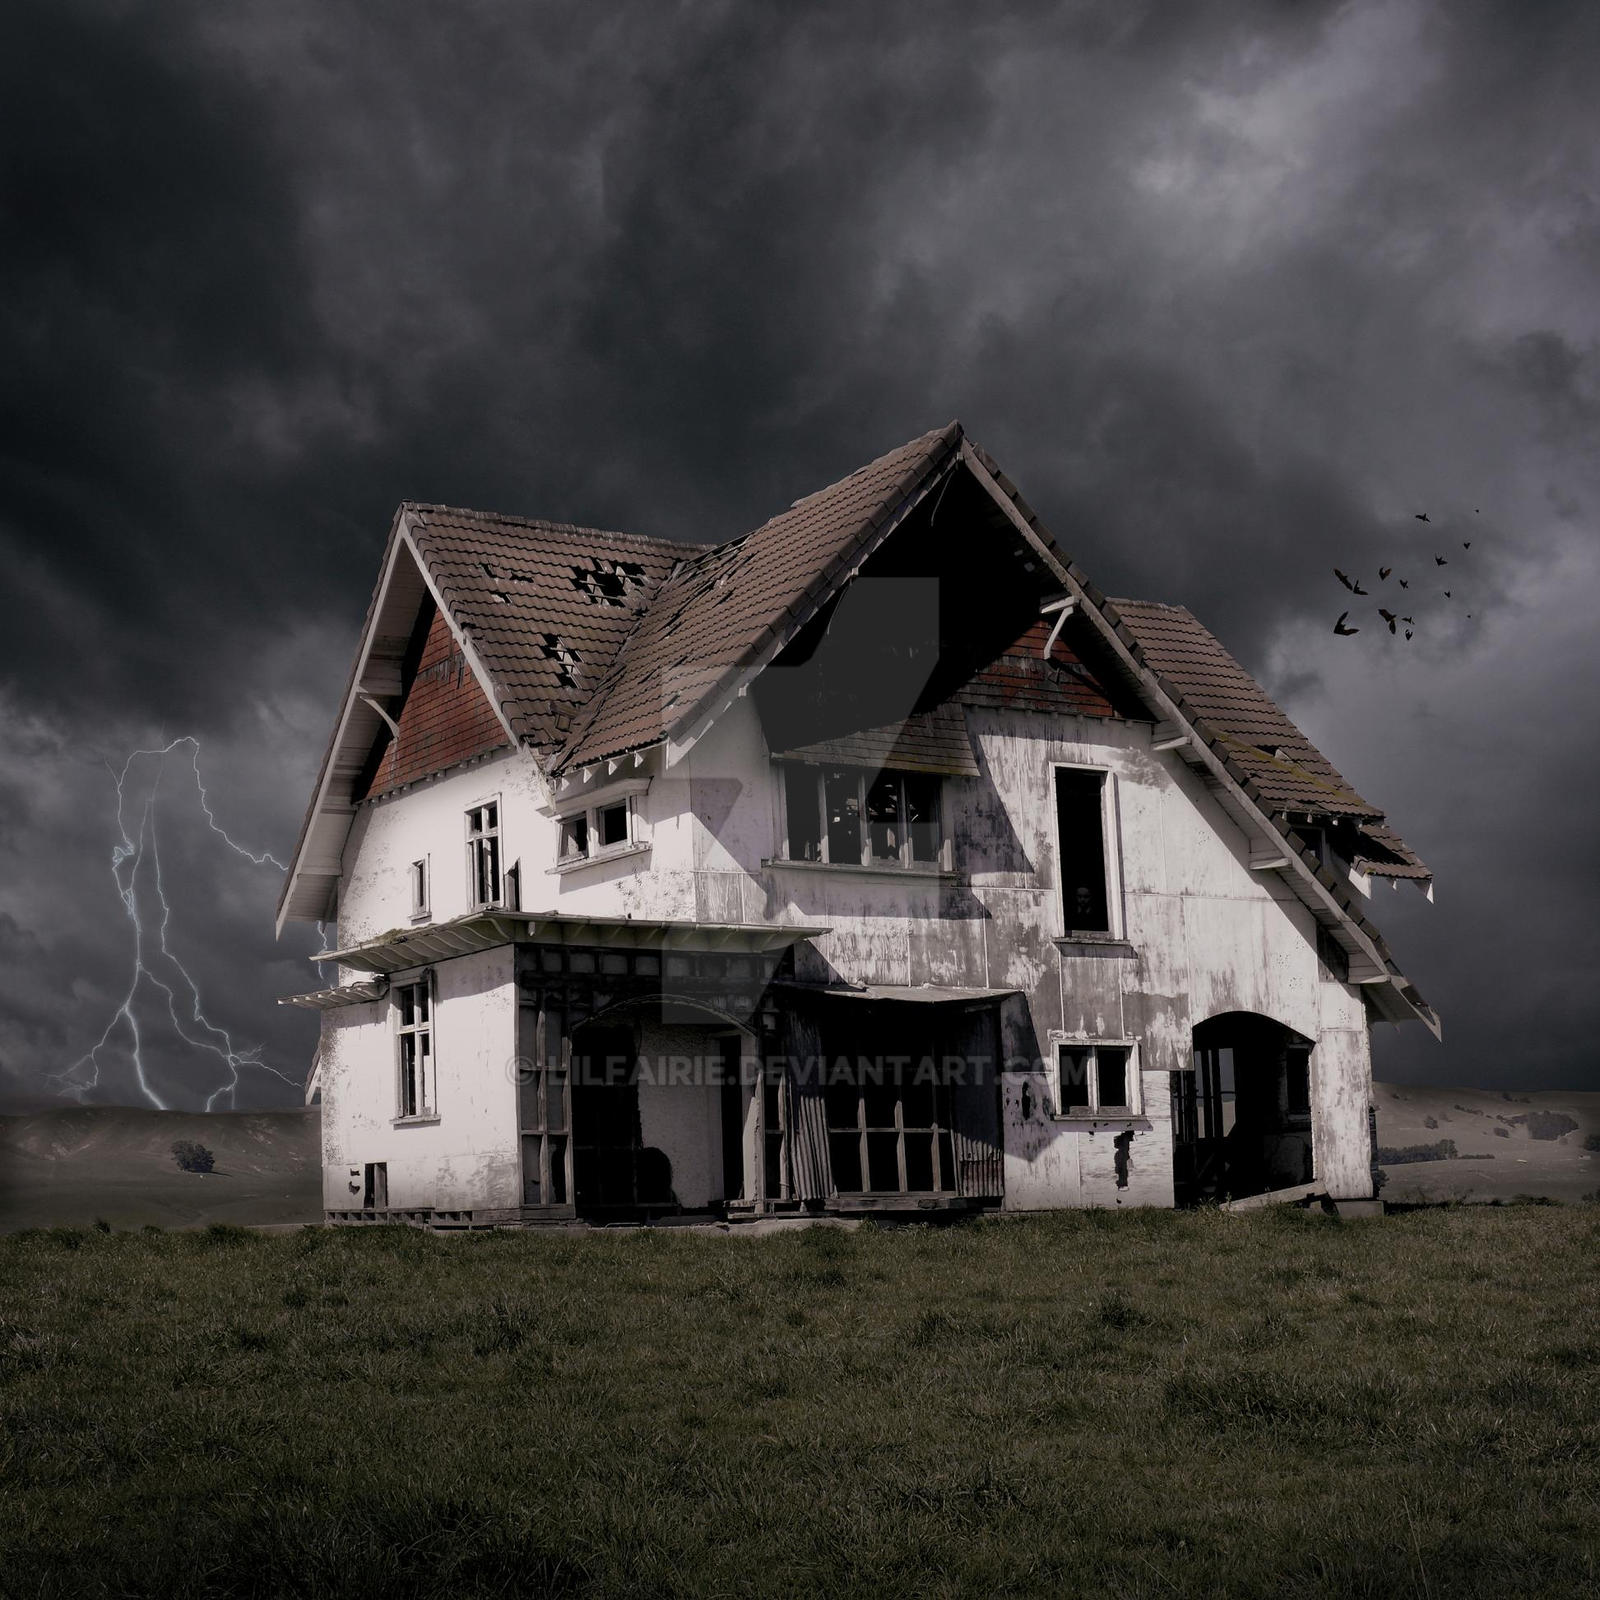 Haunted House Of Carterton By Lilfairie On Deviantart